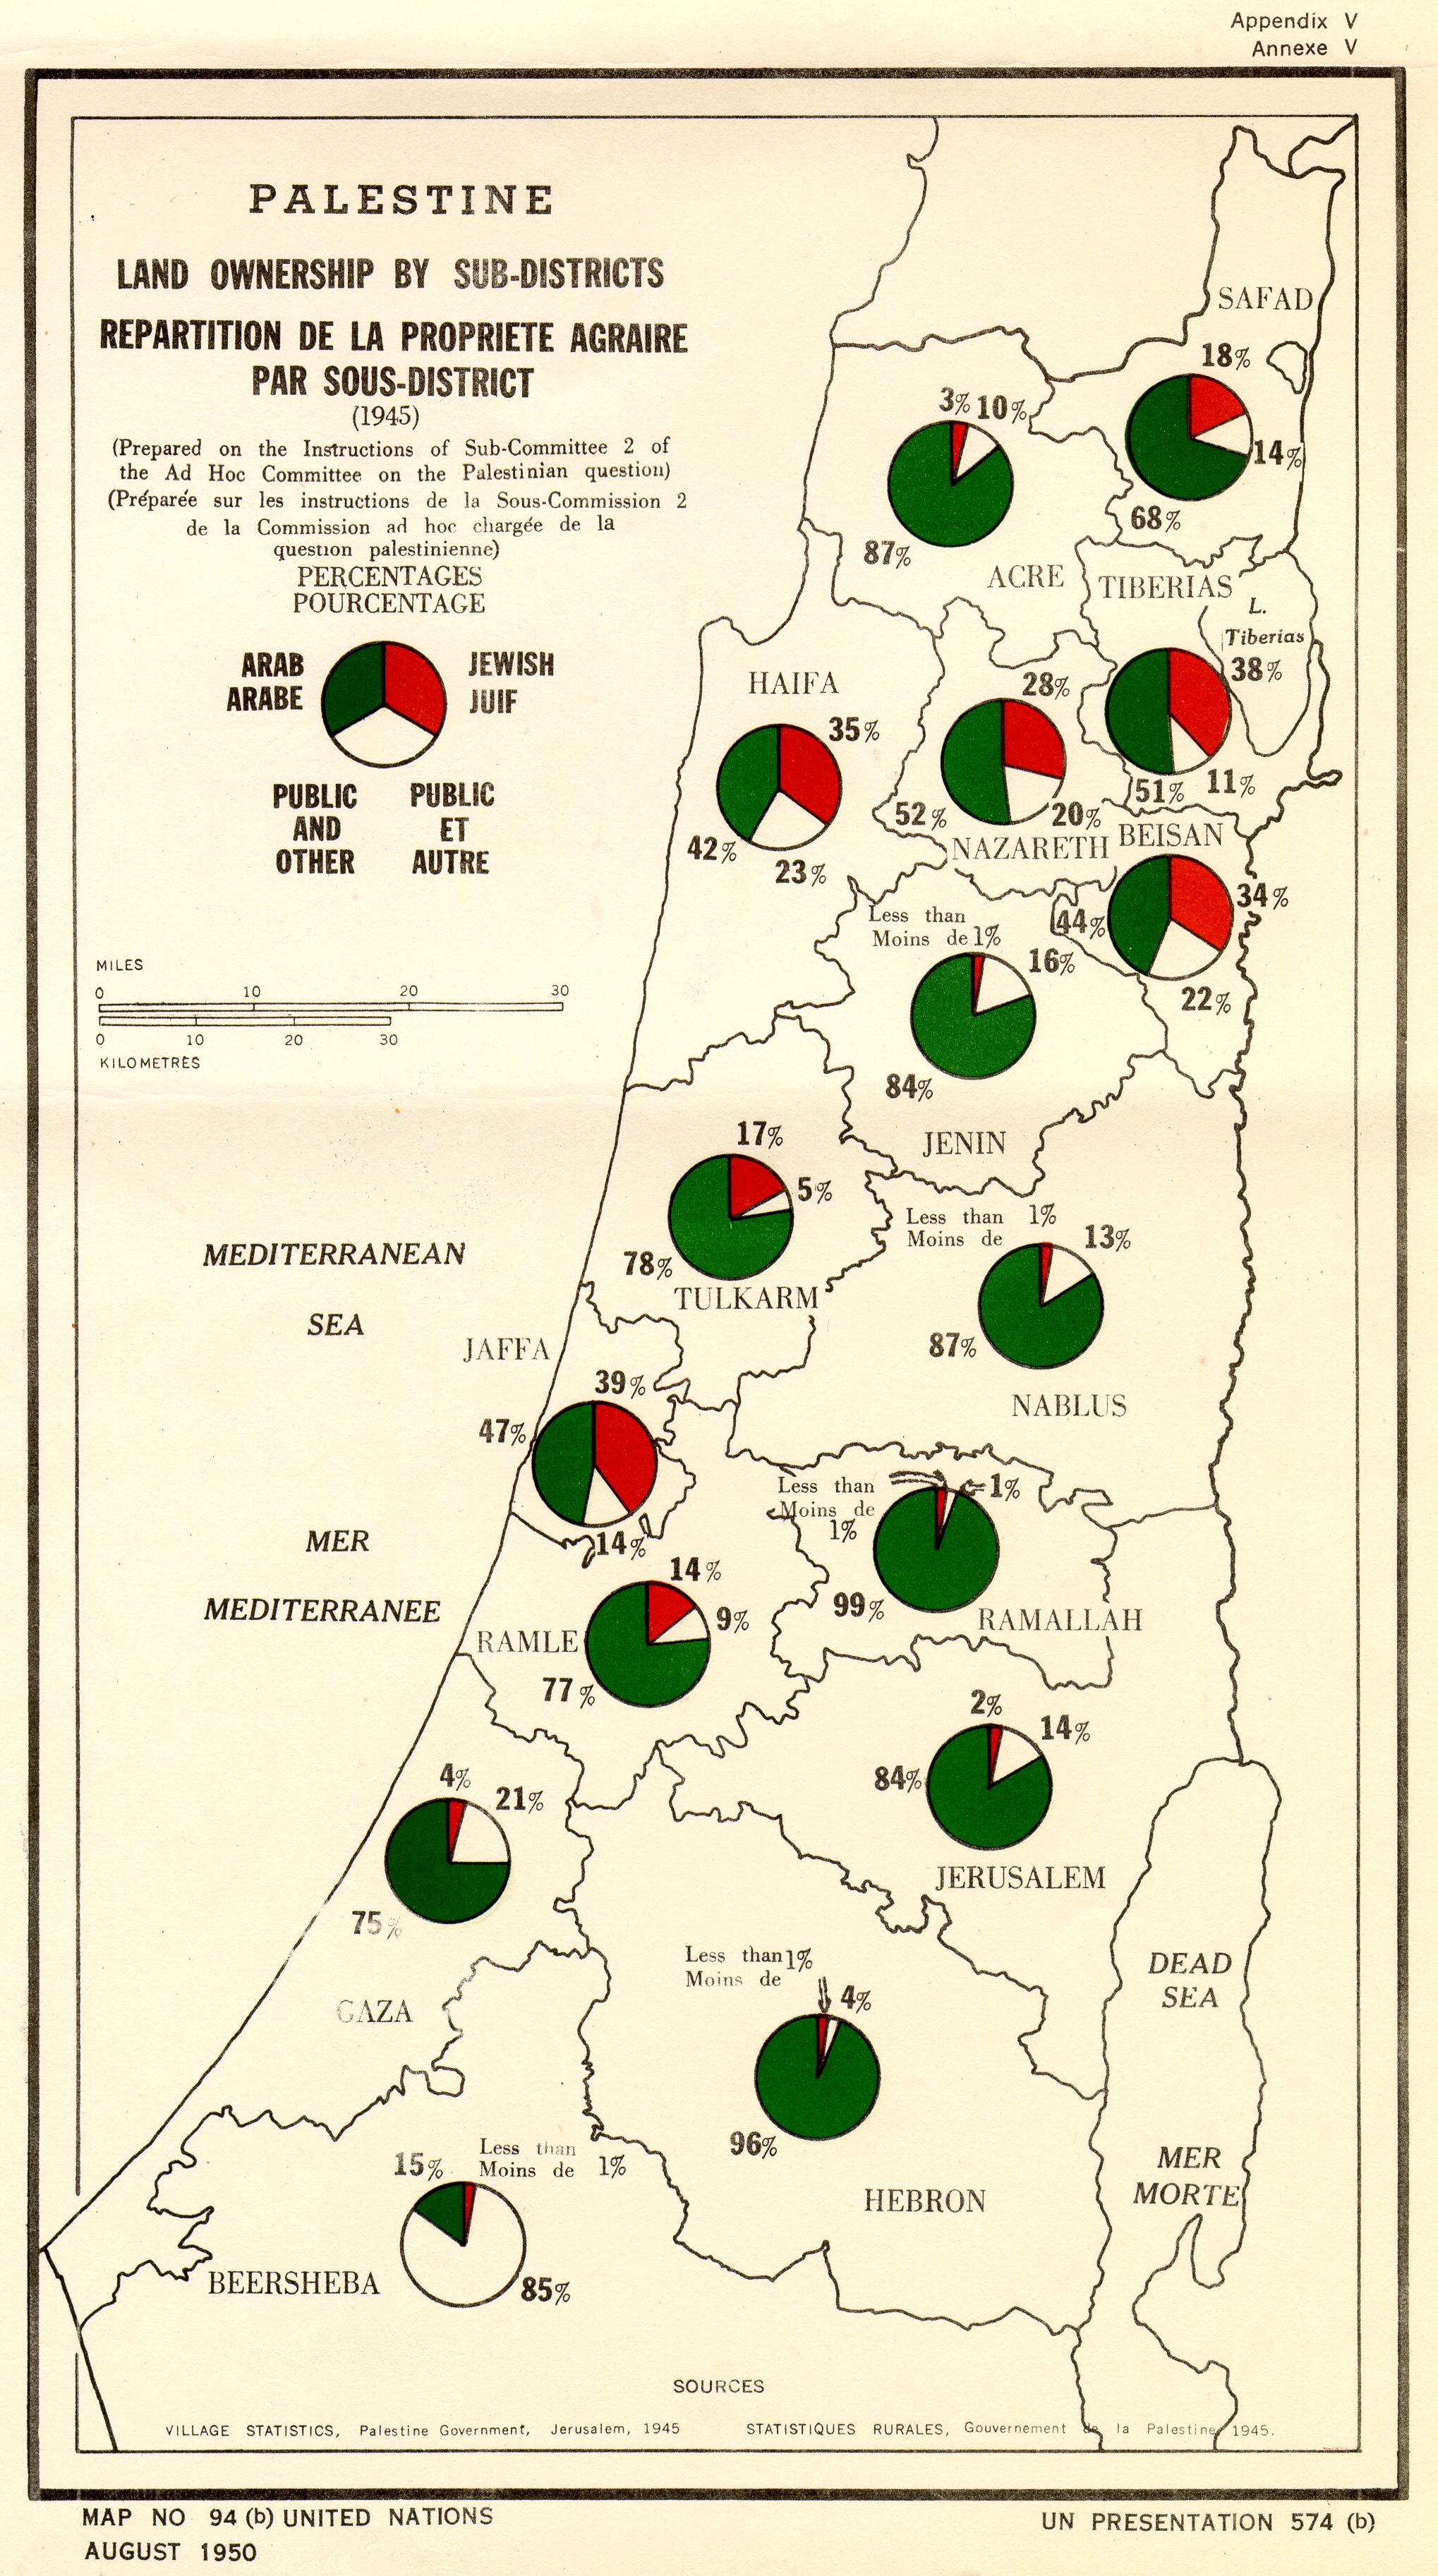 Map of land ownership in Palestine by sub-district in 1945